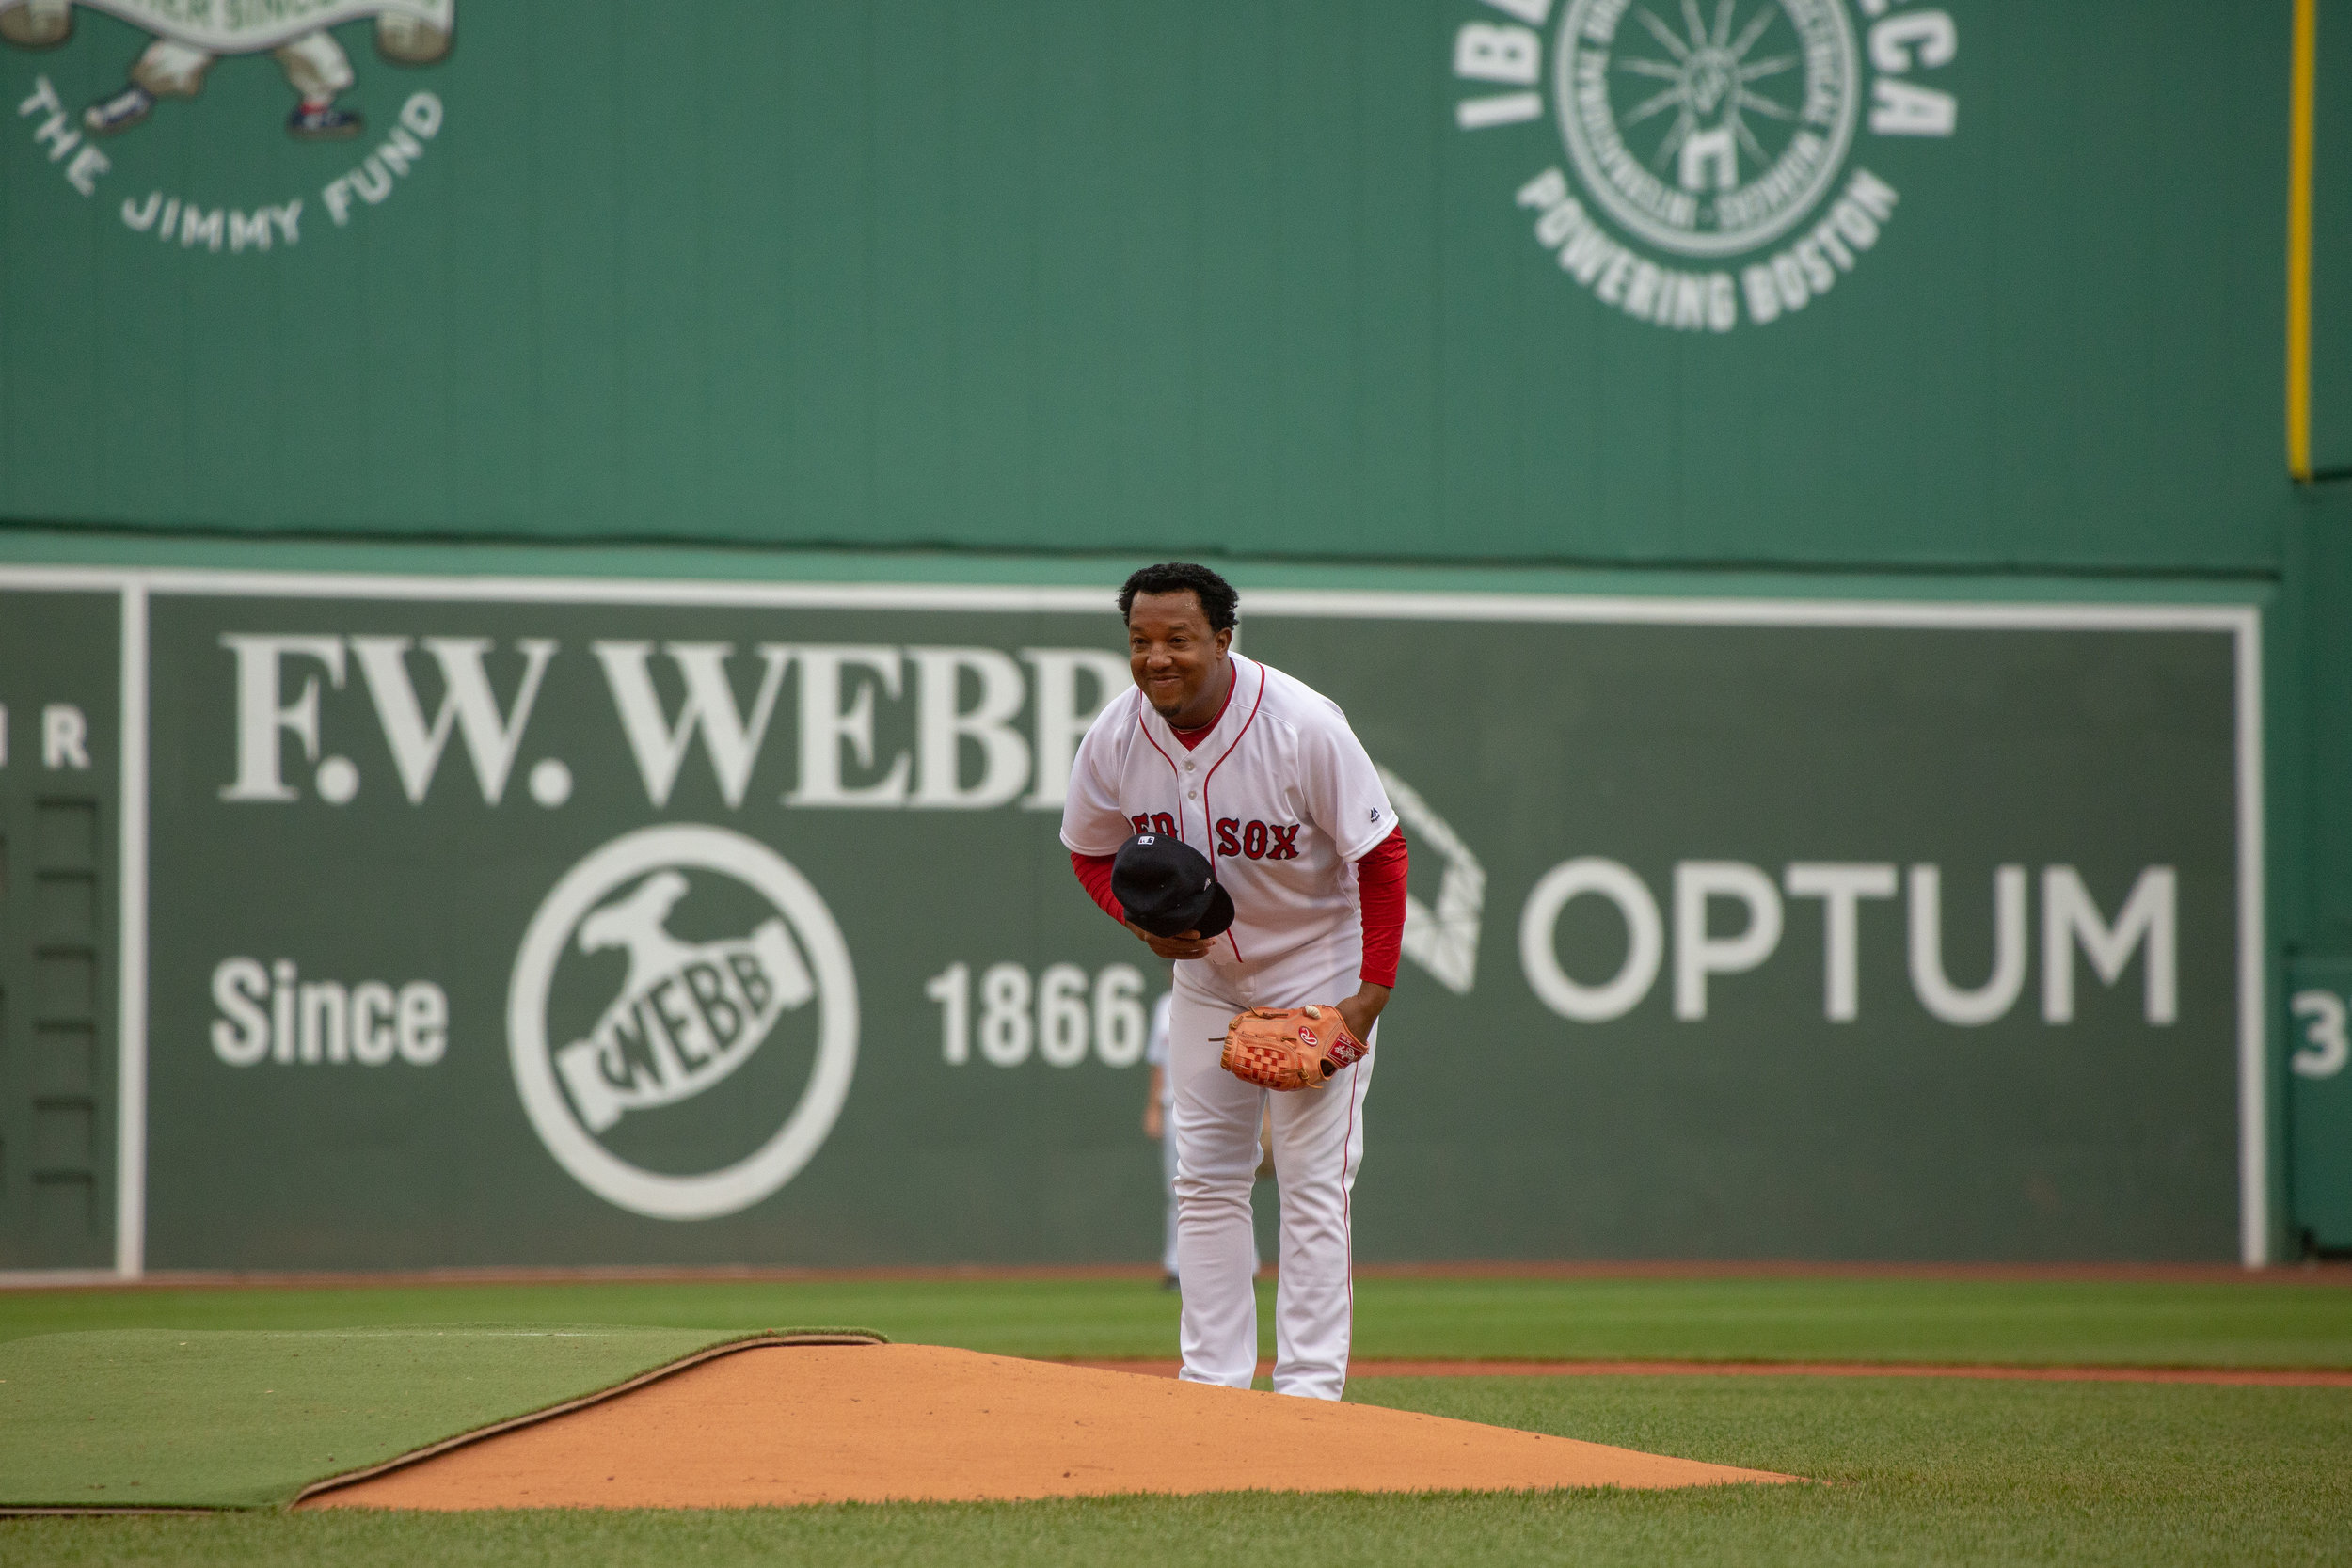 Hall of fame pitcher Pedro Martinez takes a bow to the crowd and batter as he steps to the mound during the 2018 Red Sox Alumni Game.